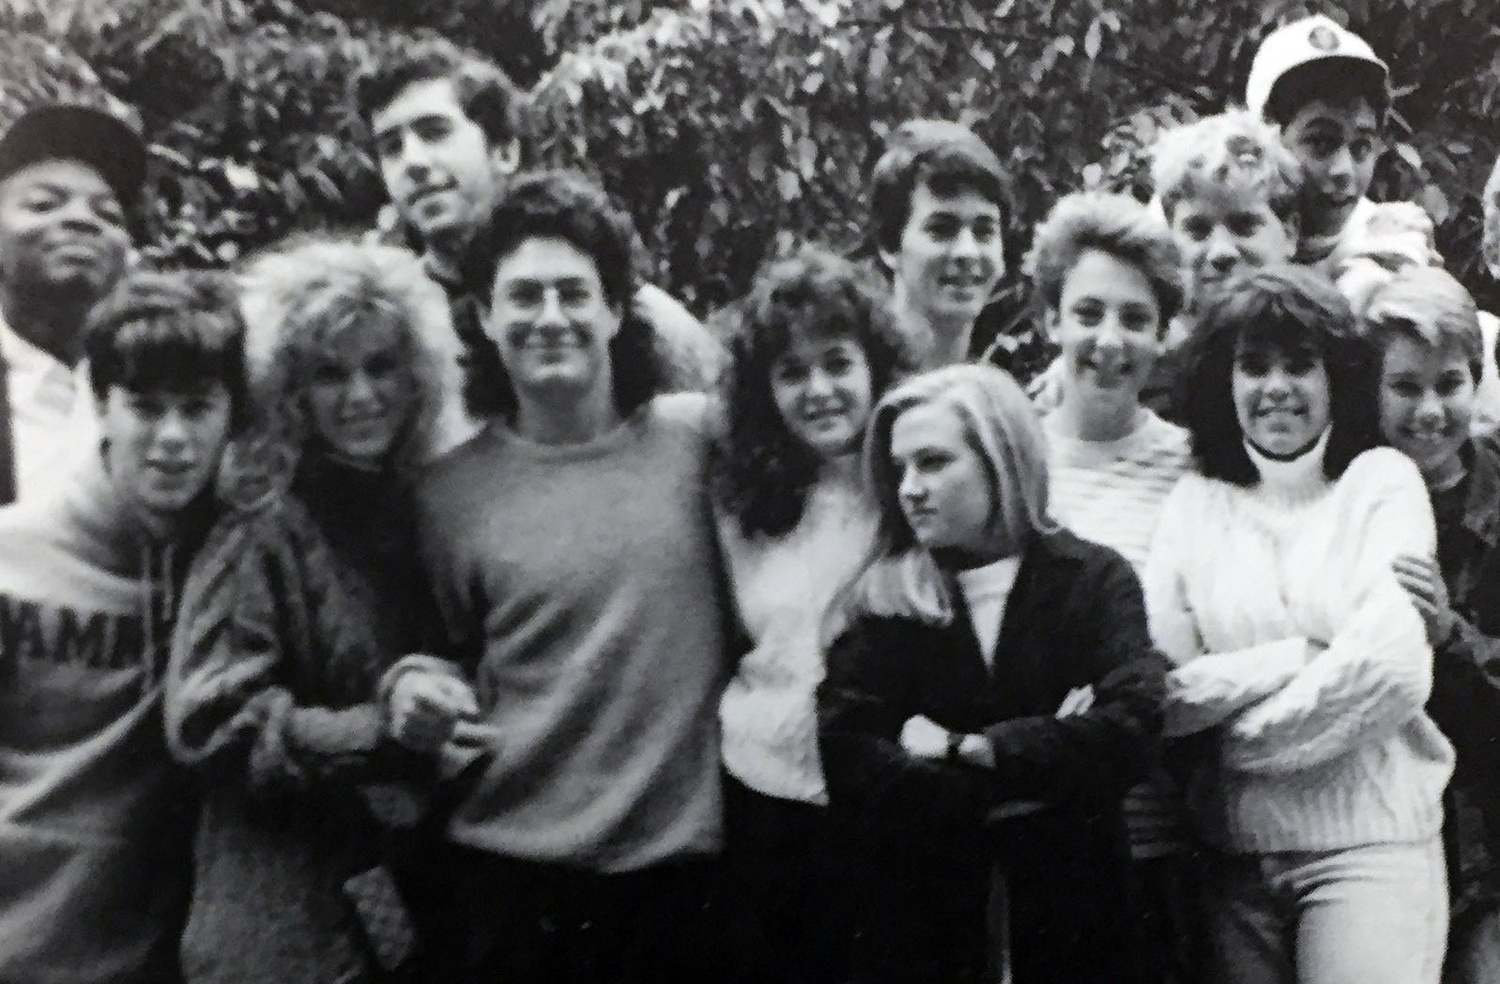 Sheryl Sandberg '91, pictured in center, stands with her entryway mates of Canaday E during the 1987-1988 academic year.